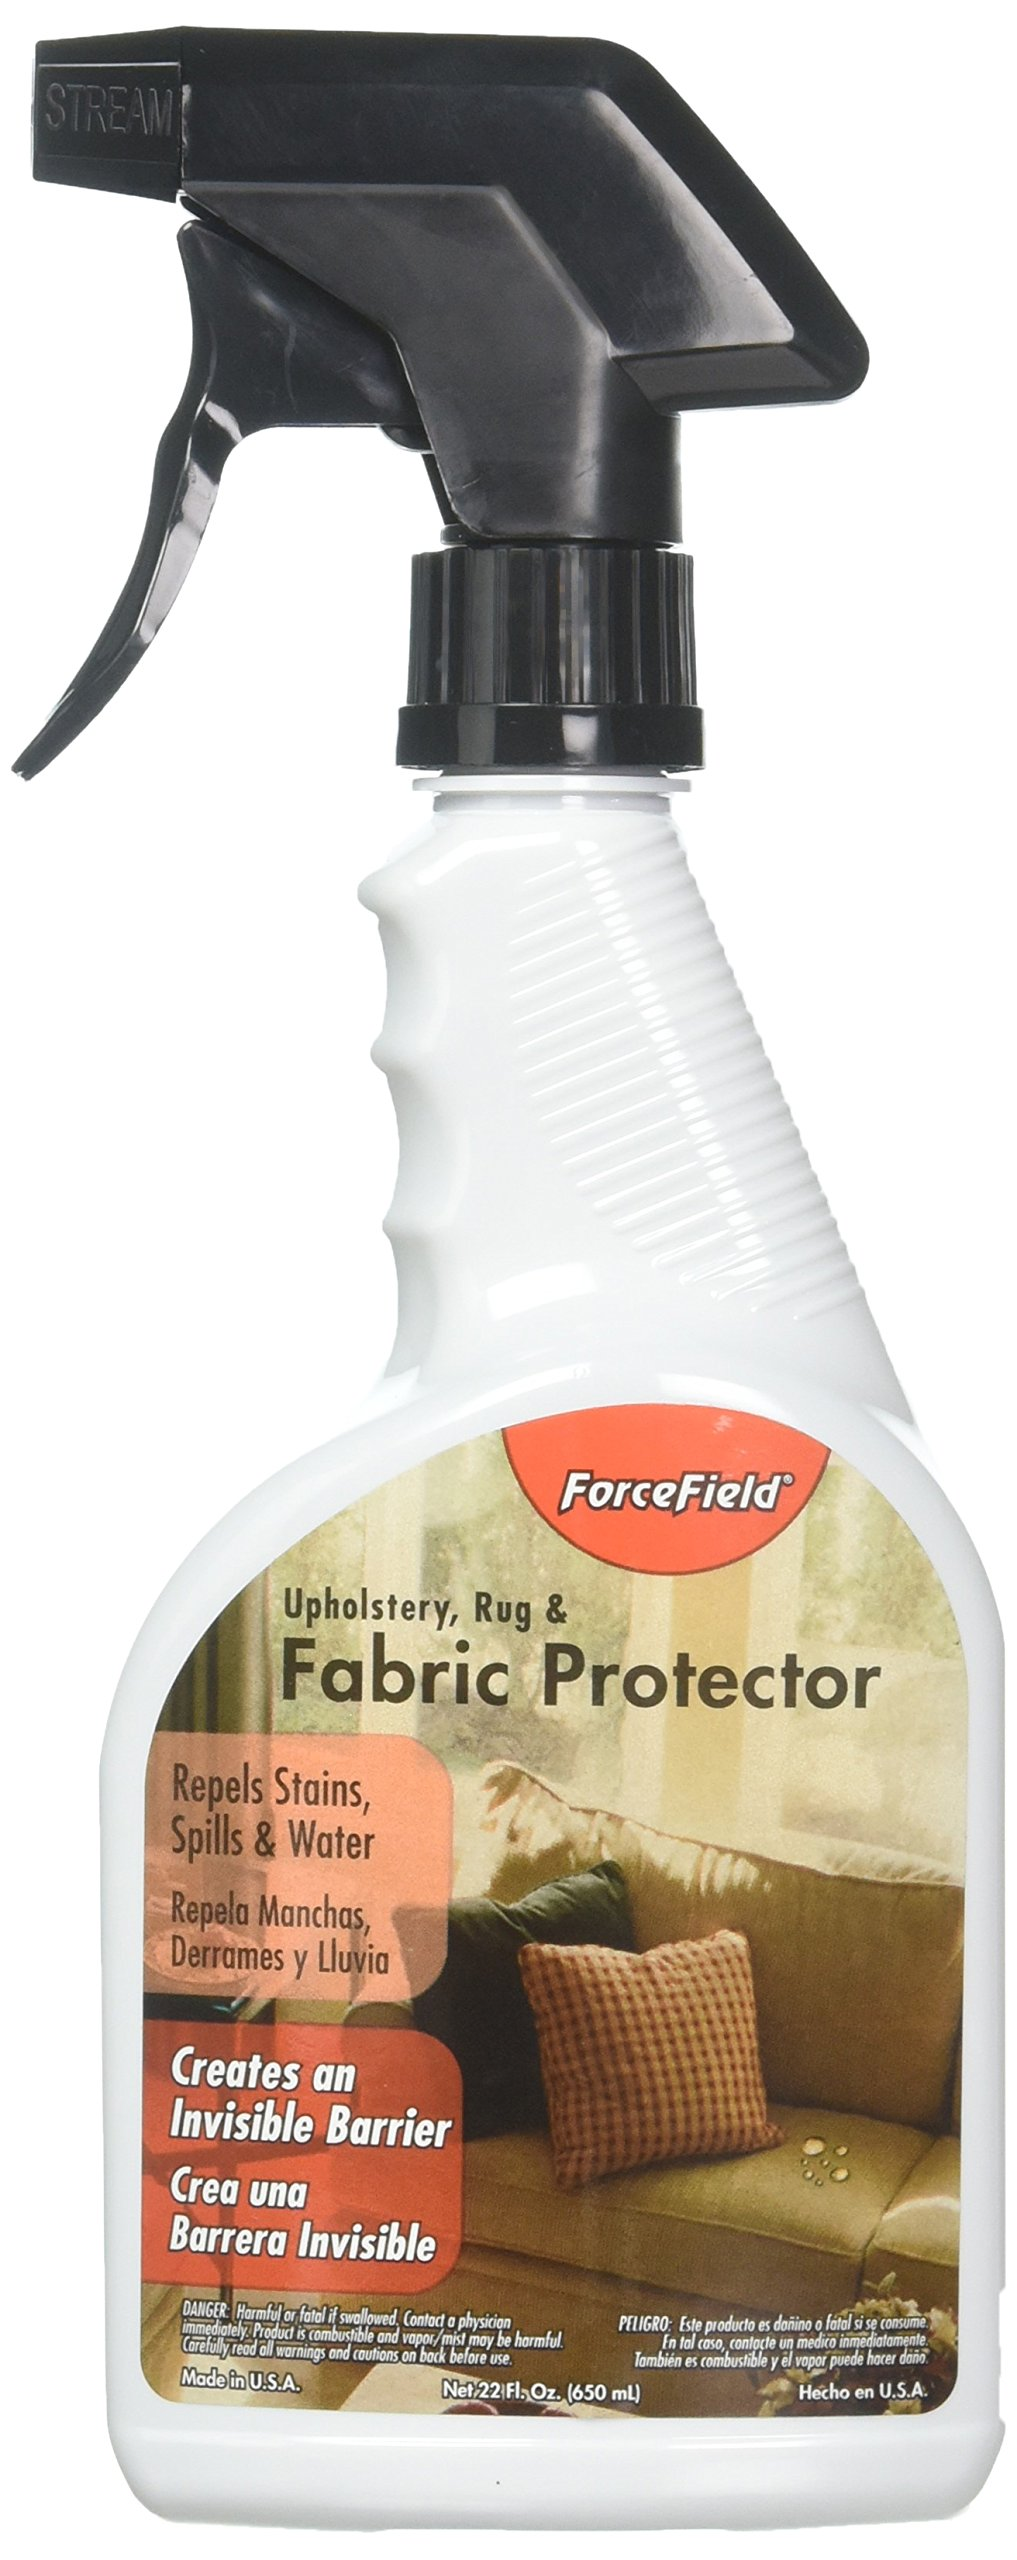 ForceField F FBP 22C6 A Fabric Protector